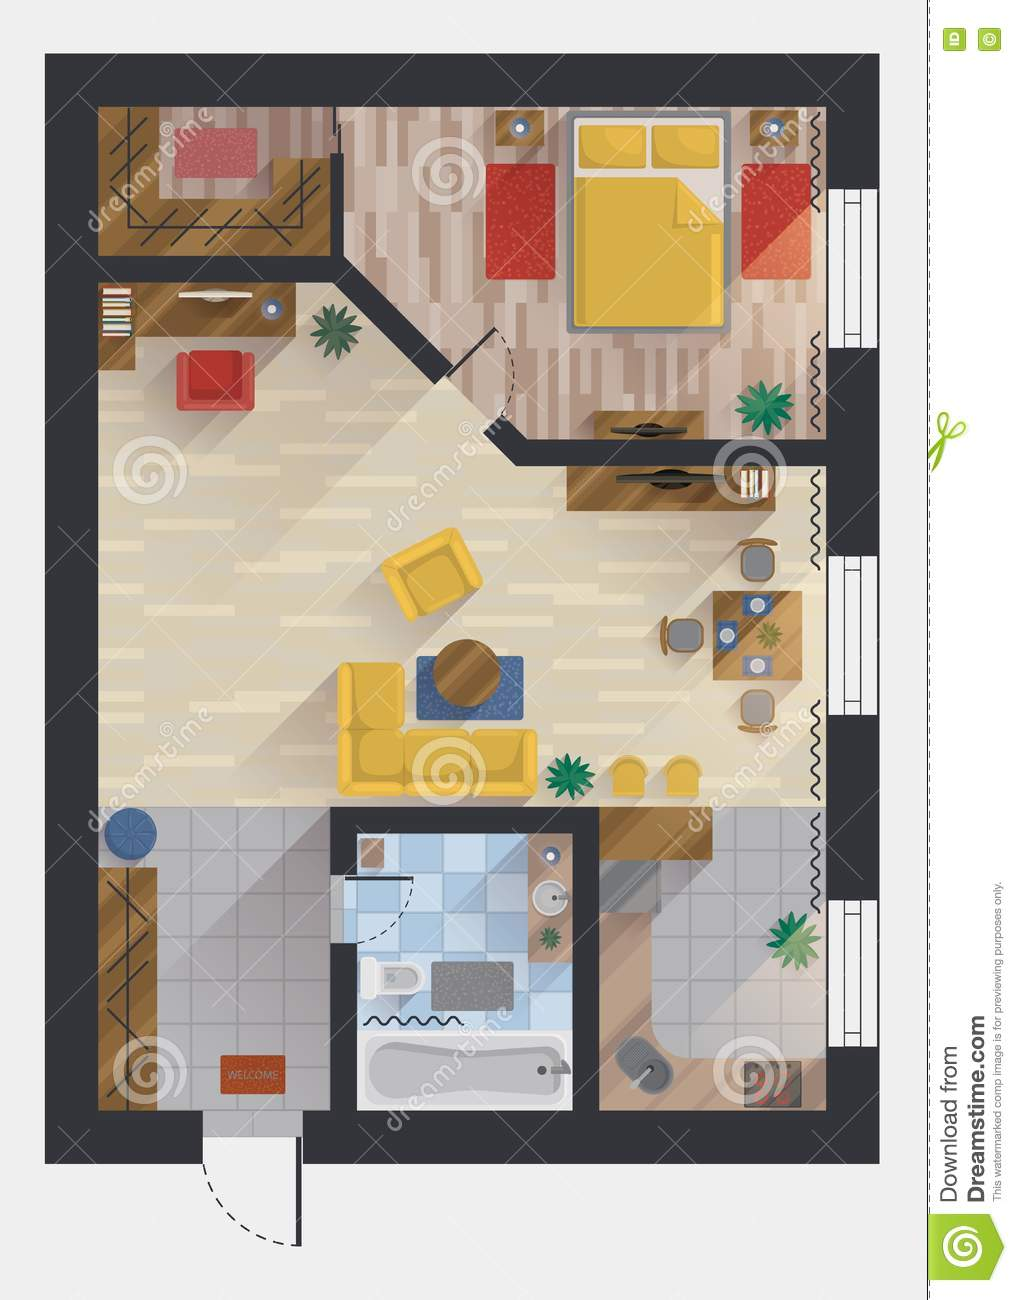 partment Or Flat, House, Floor Plan op View Stock Vector - Image ... - ^